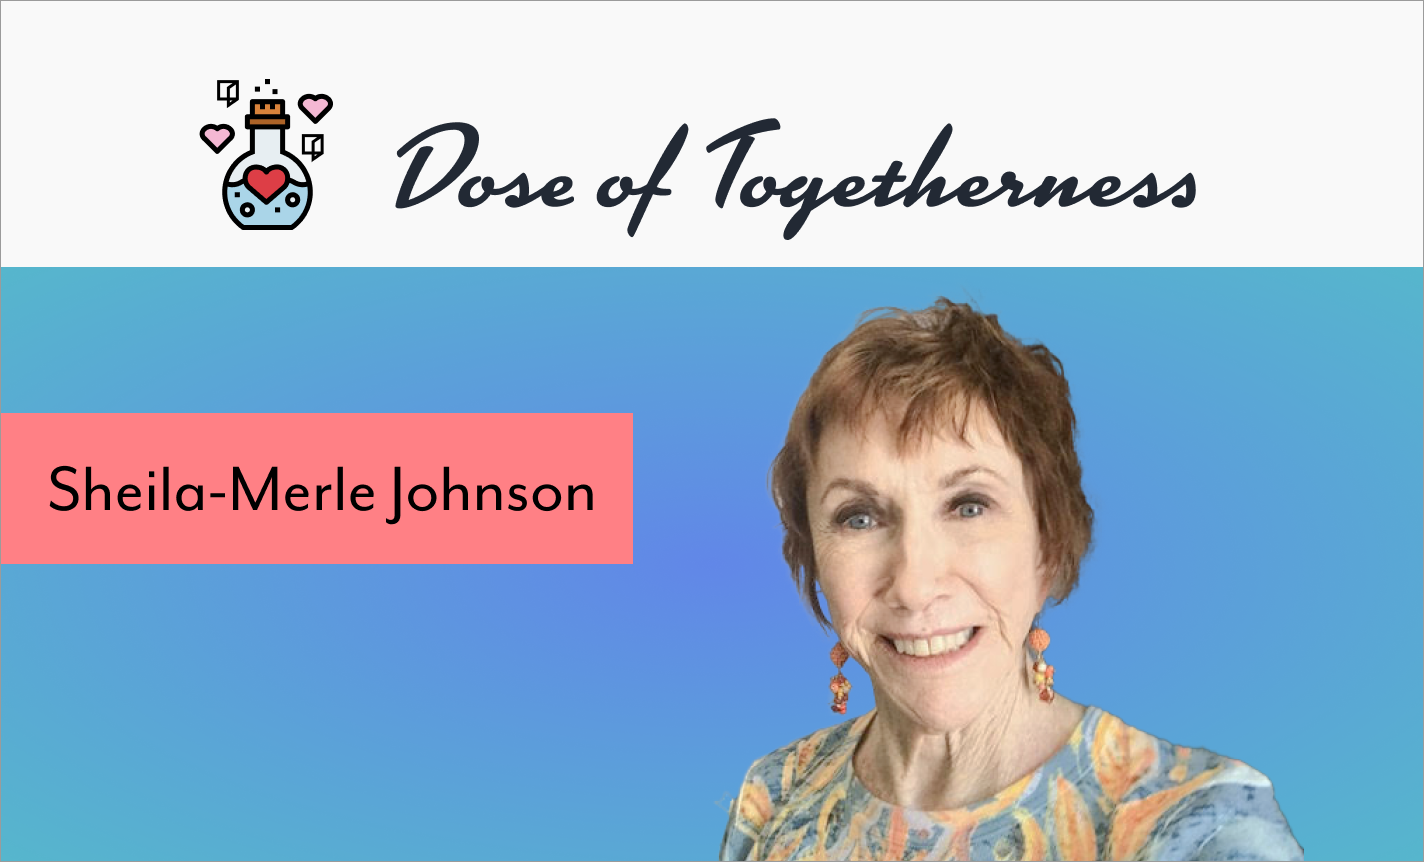 Dose of Togetherness with Sheila-Merle Johnson